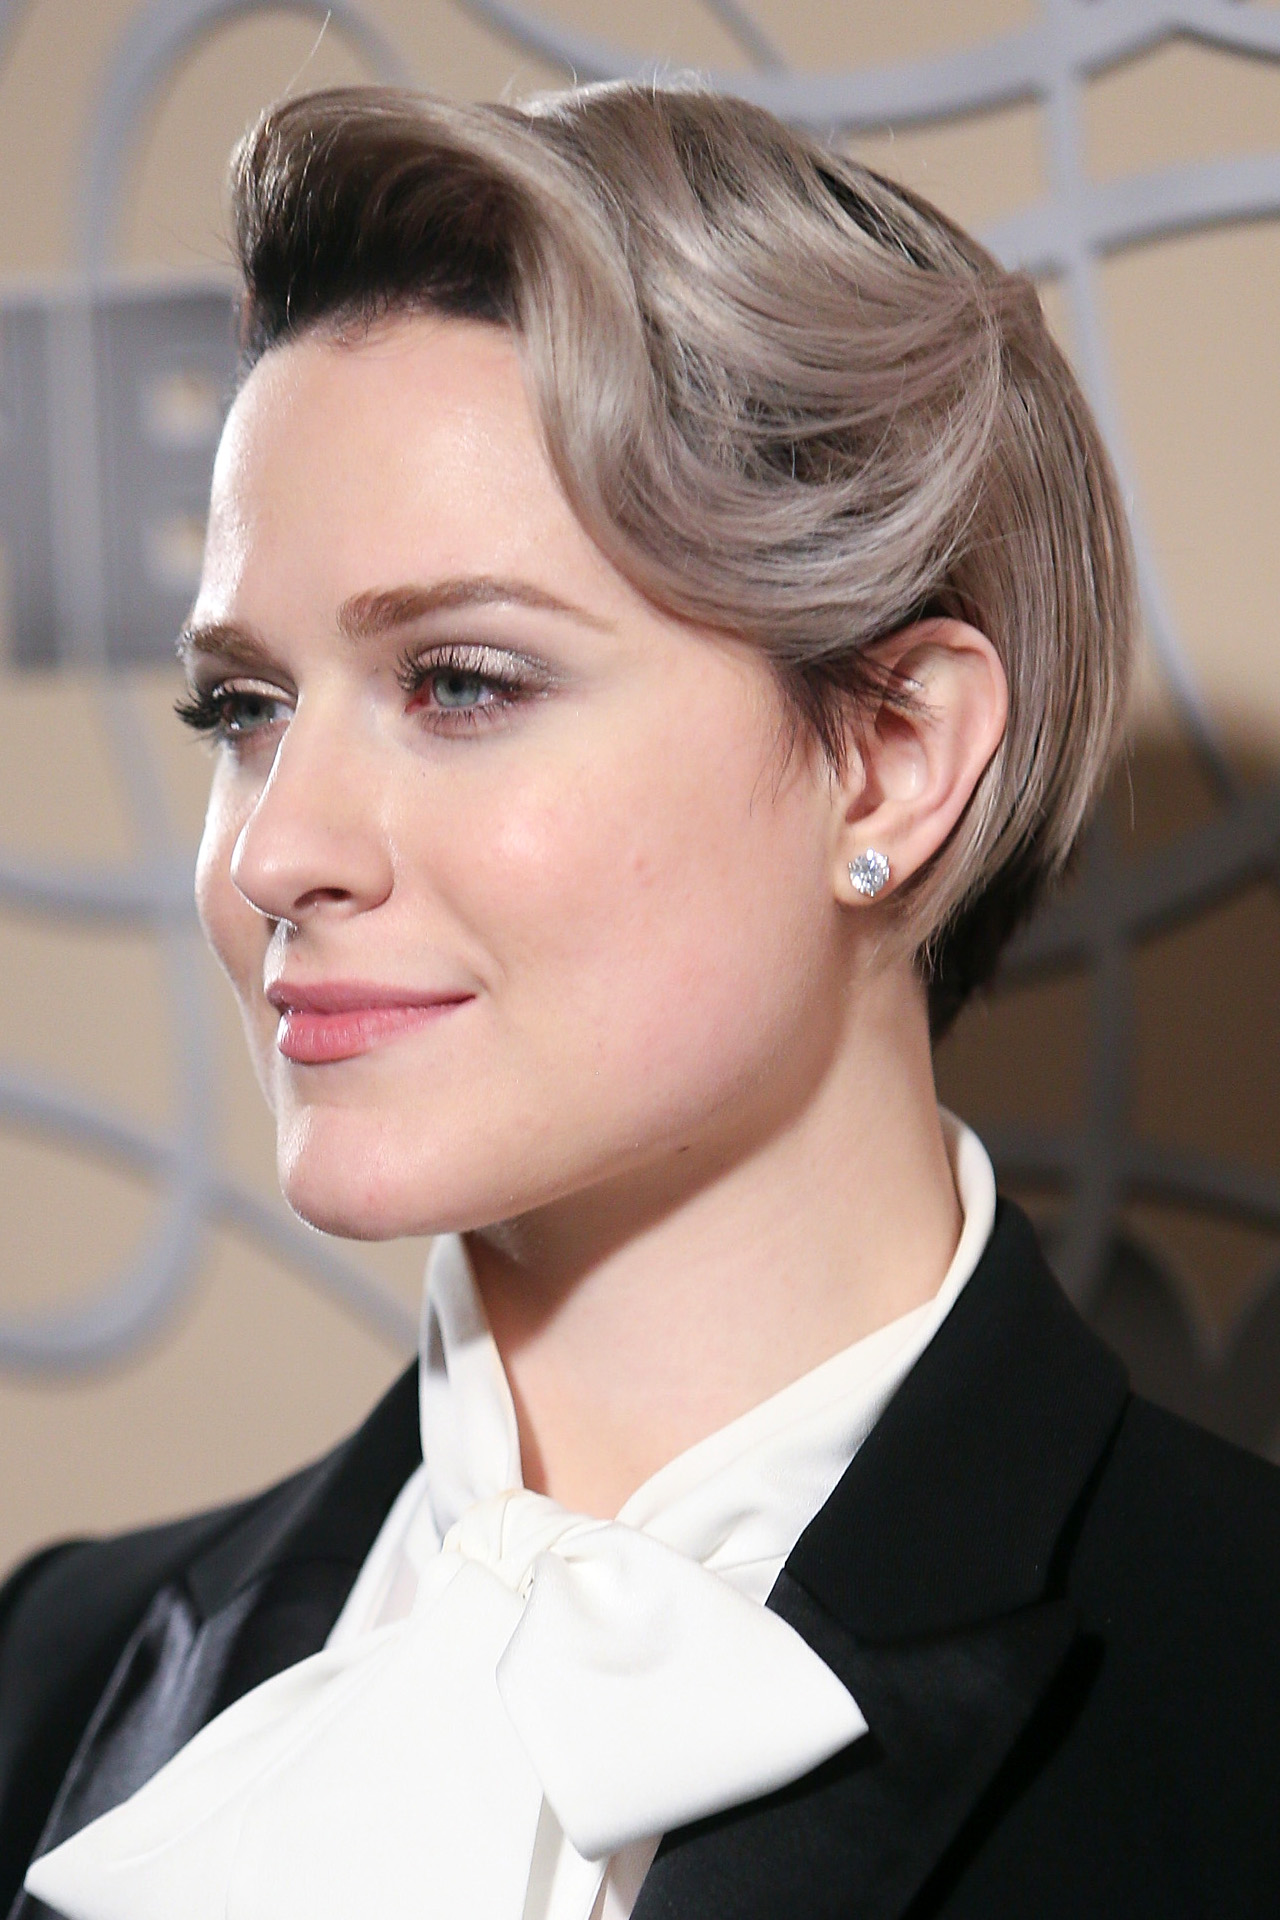 30 Cute Short Hairstyles For Women